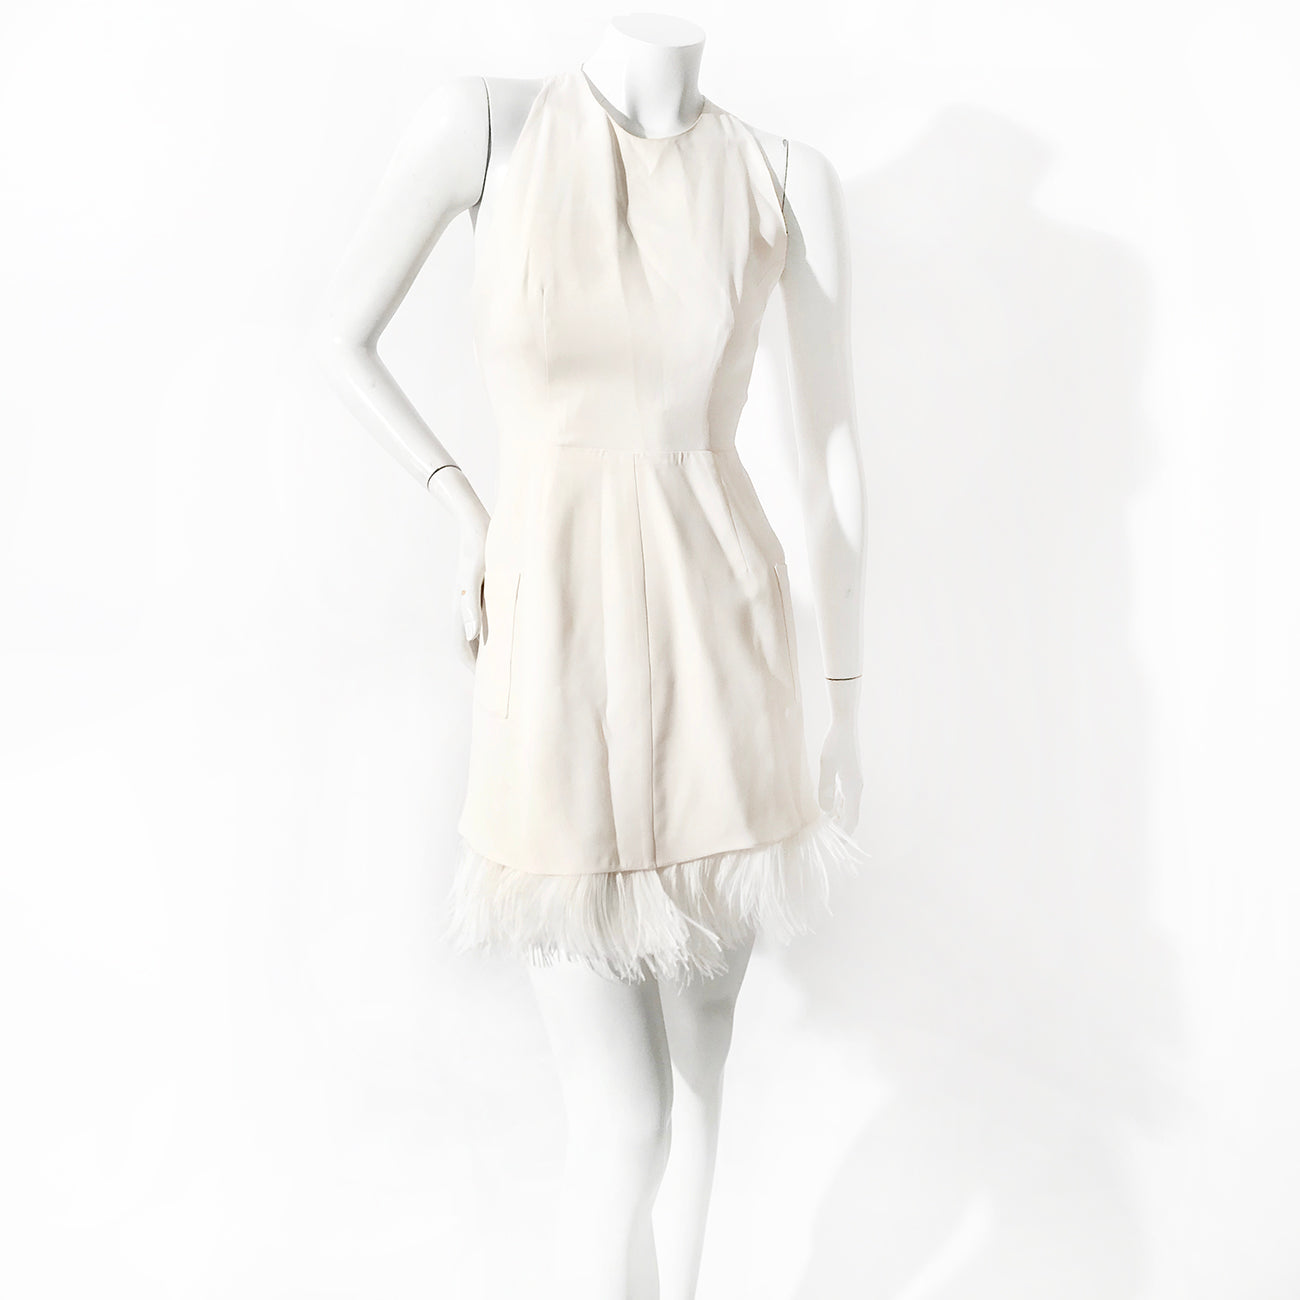 Morgane Le Fay Feather Dress